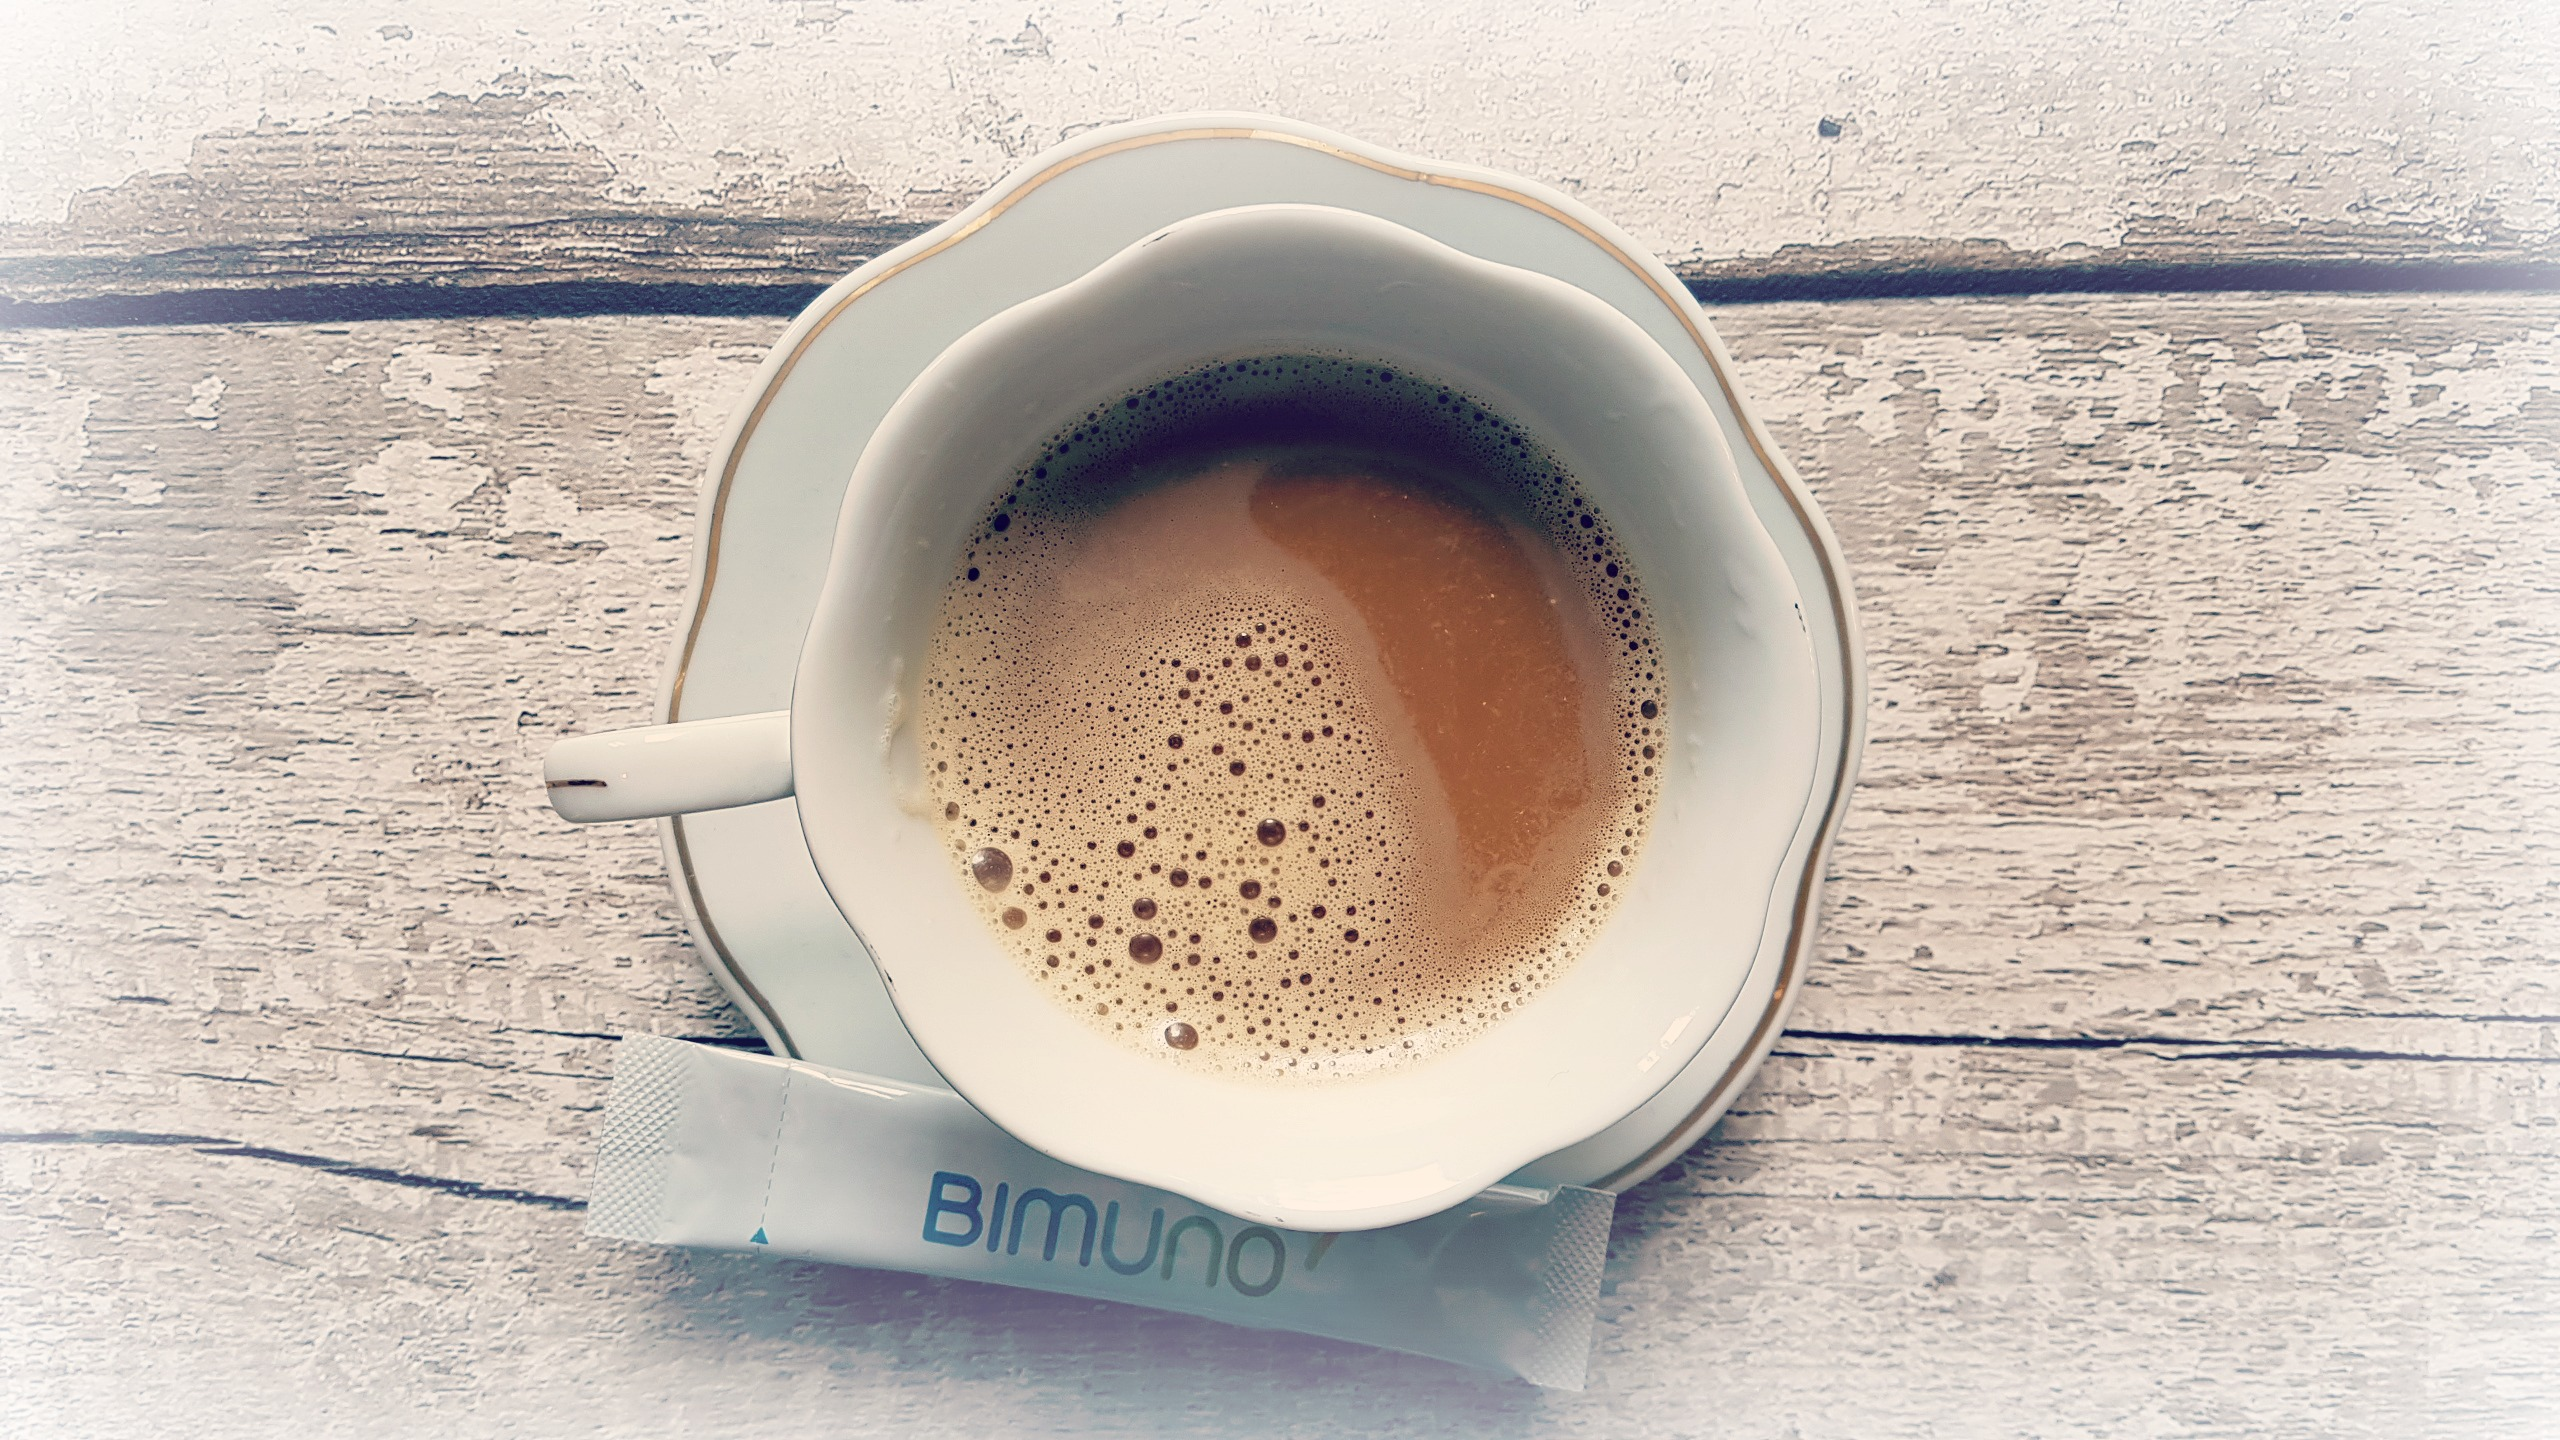 a sachet of bimuno daily on the saucer of a teacup with coffee in the cup